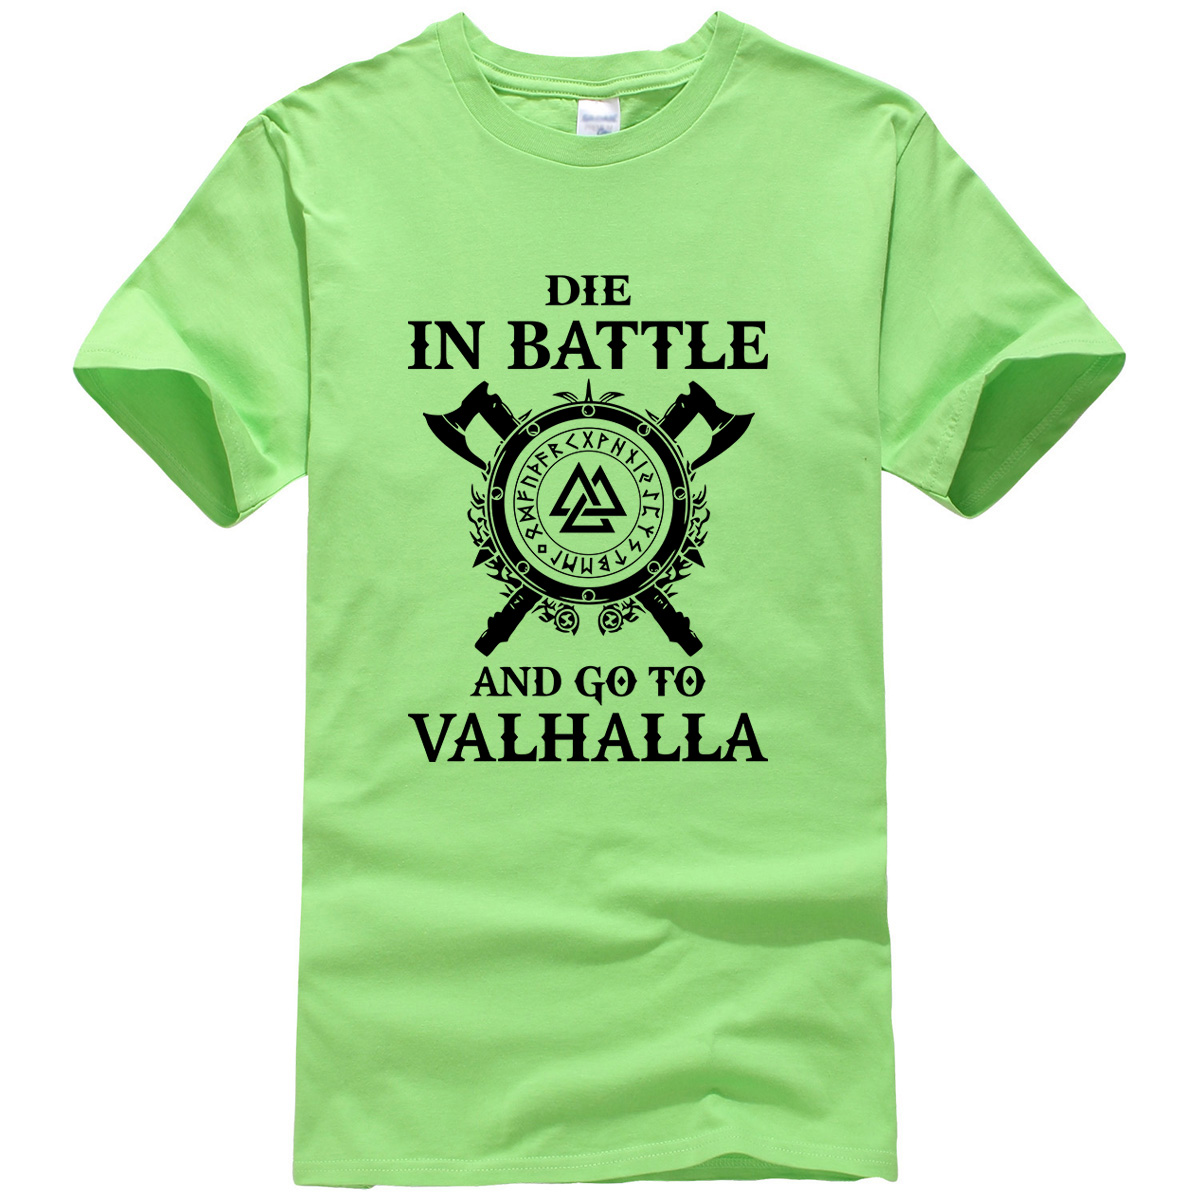 Summer 2019 New Fashion Vikings ODIN Top Men's   T  -  shirts   DIE IN BATTLE AND GO TO VALHALLA Funny   T     Shirt   Men Harajuku Tops Tees